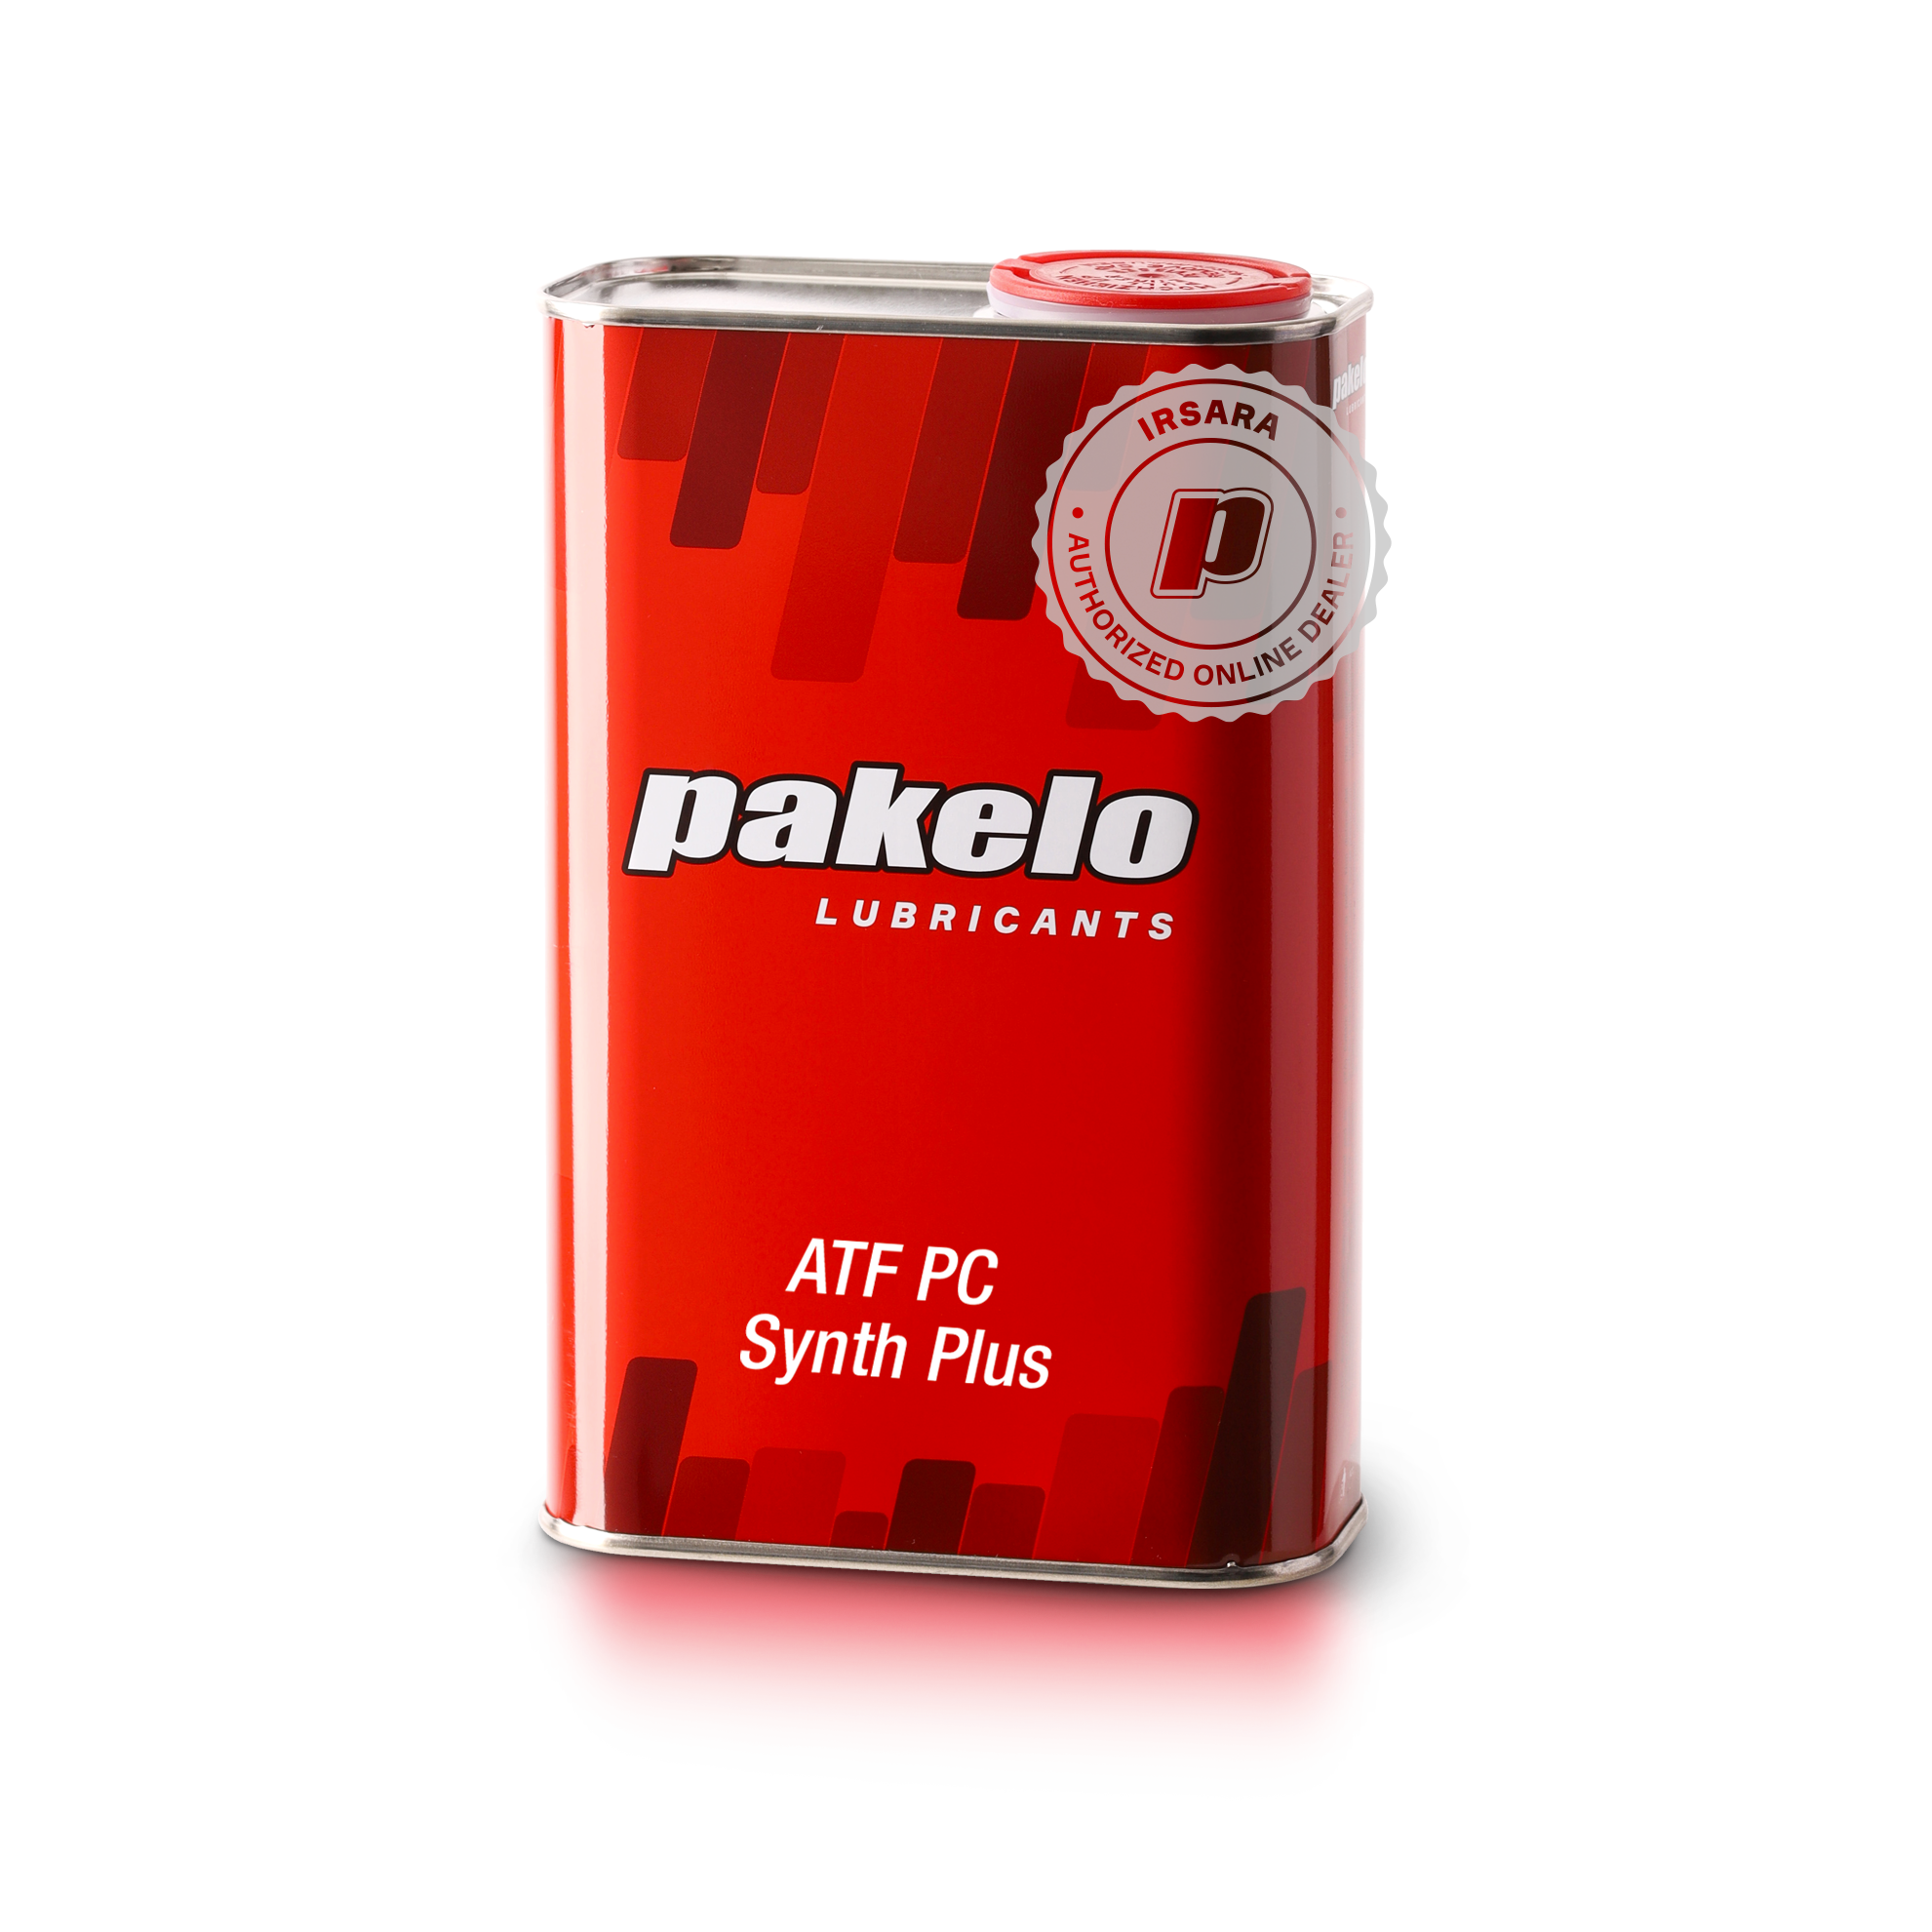 Pakelo Atf Pc Synth Plus (1 Lt)